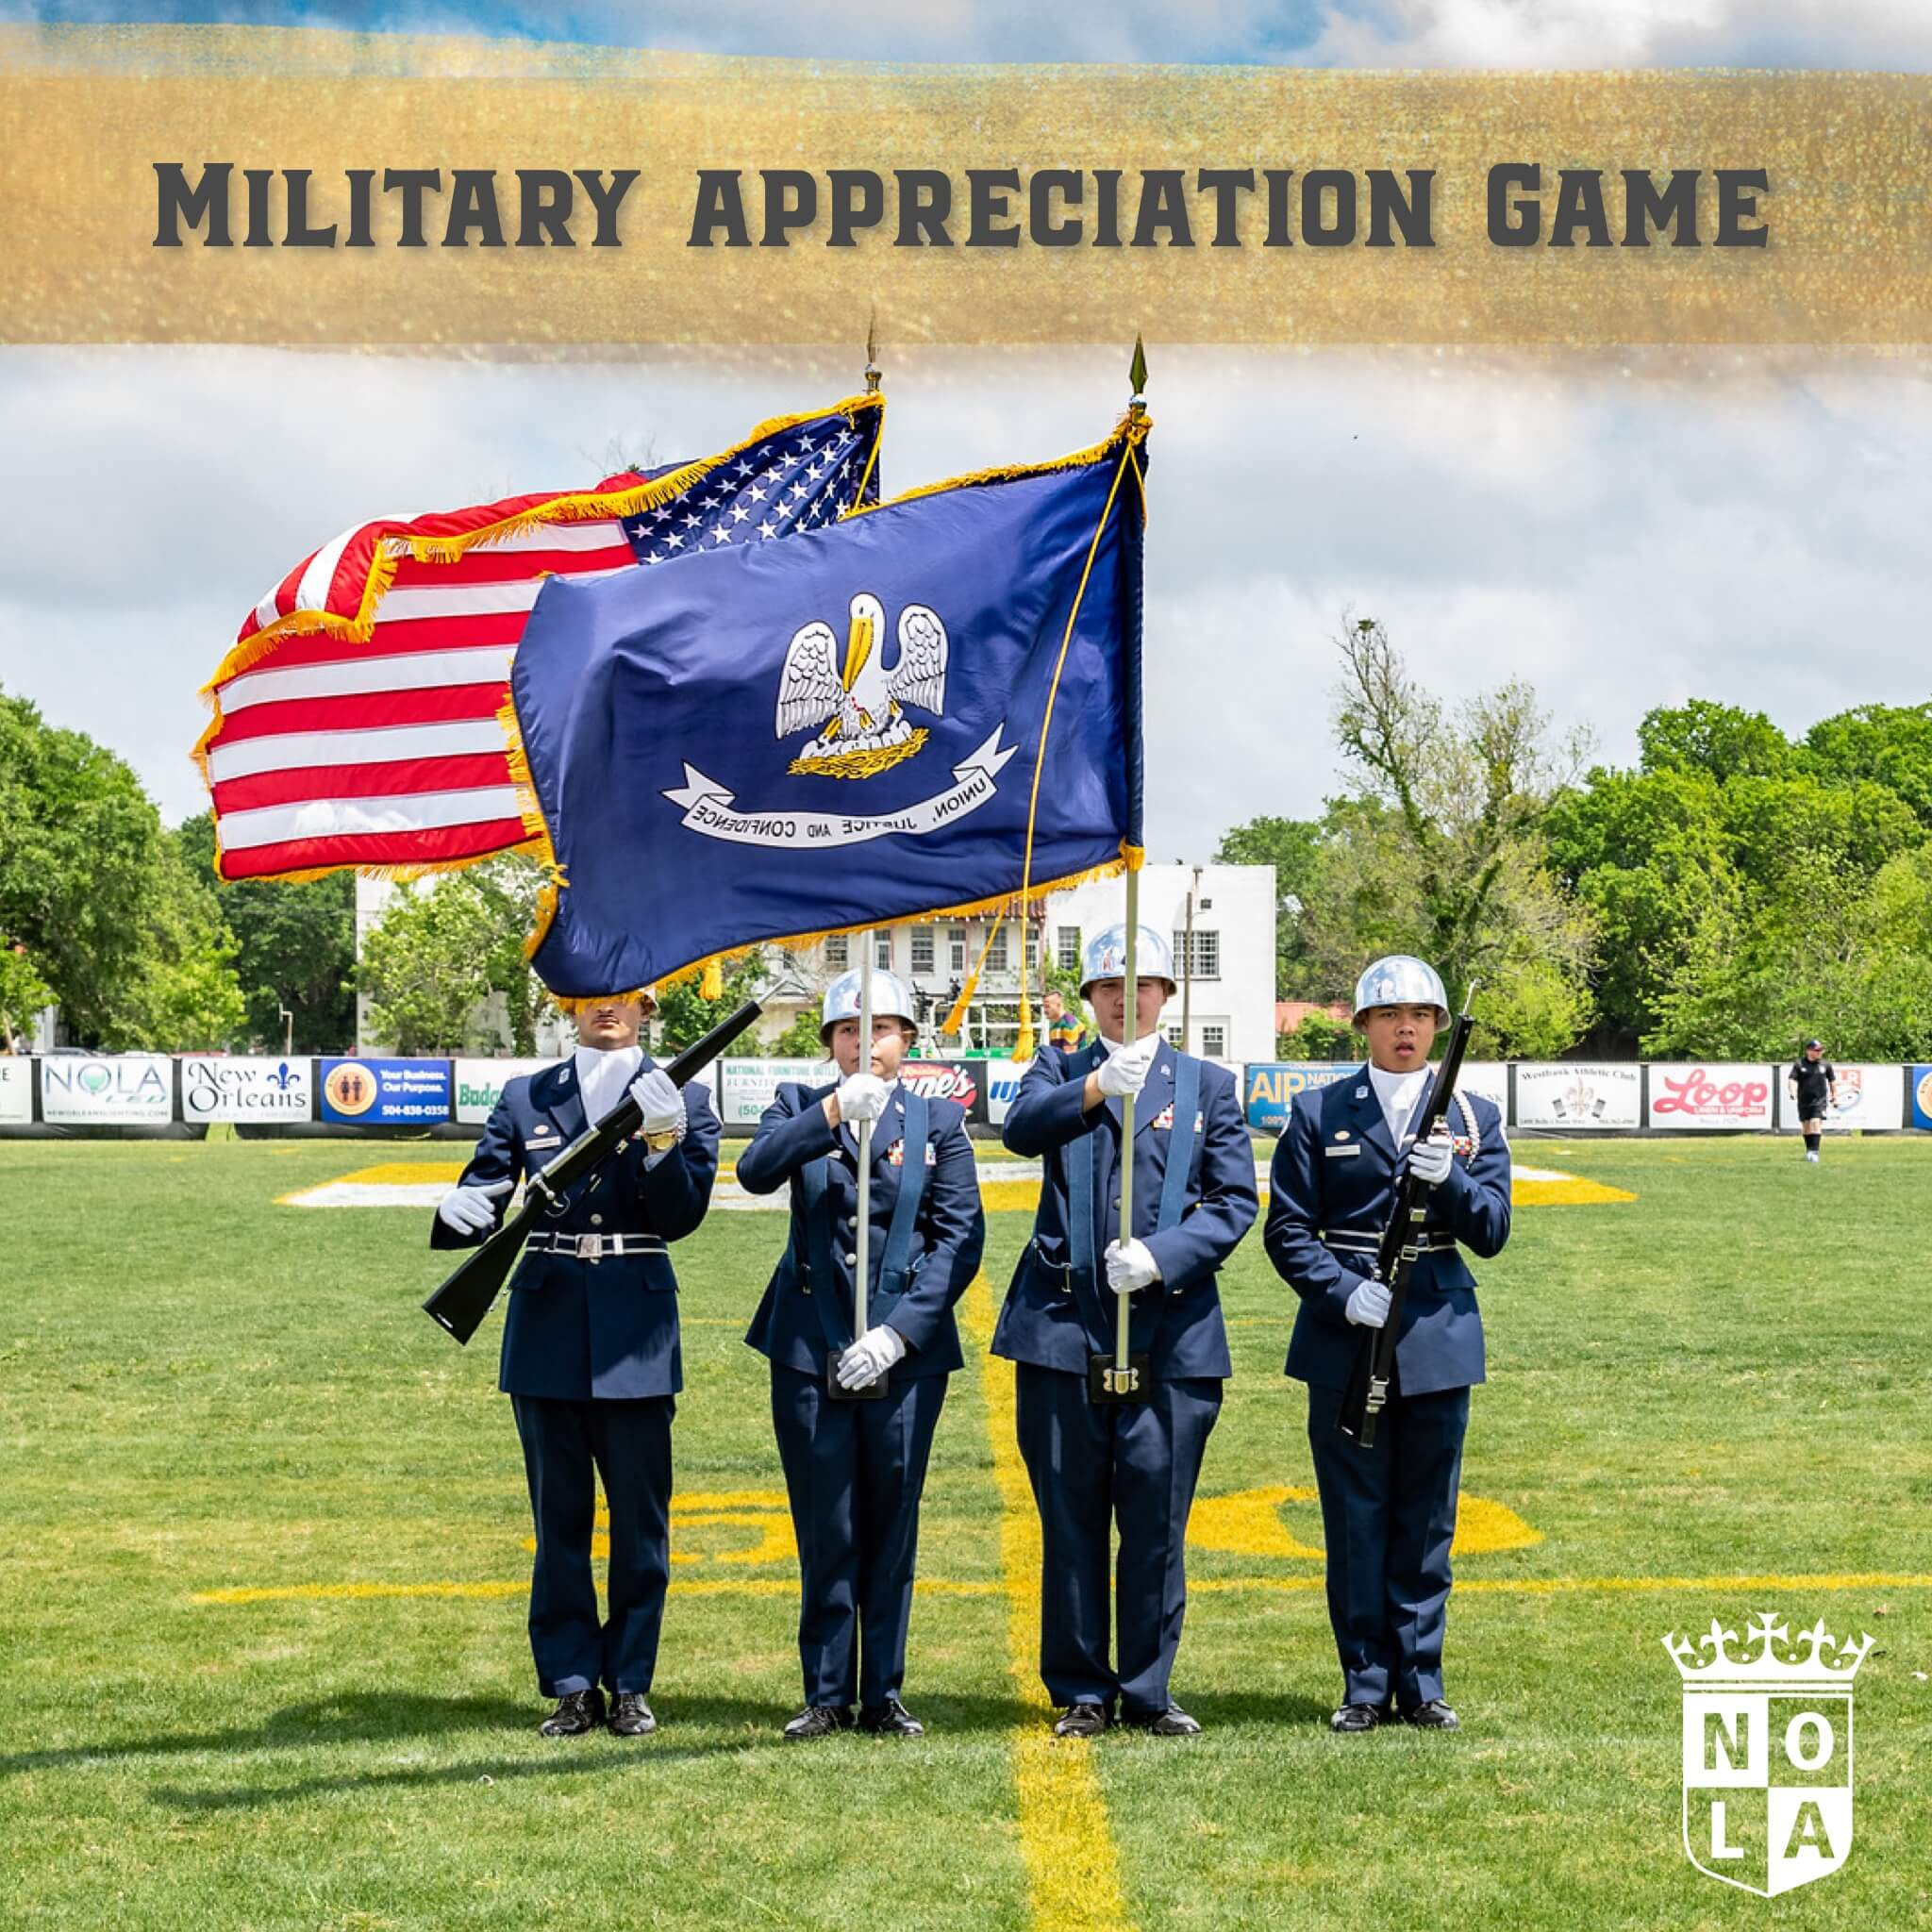 Military Appreciation Day at Gold Stadium